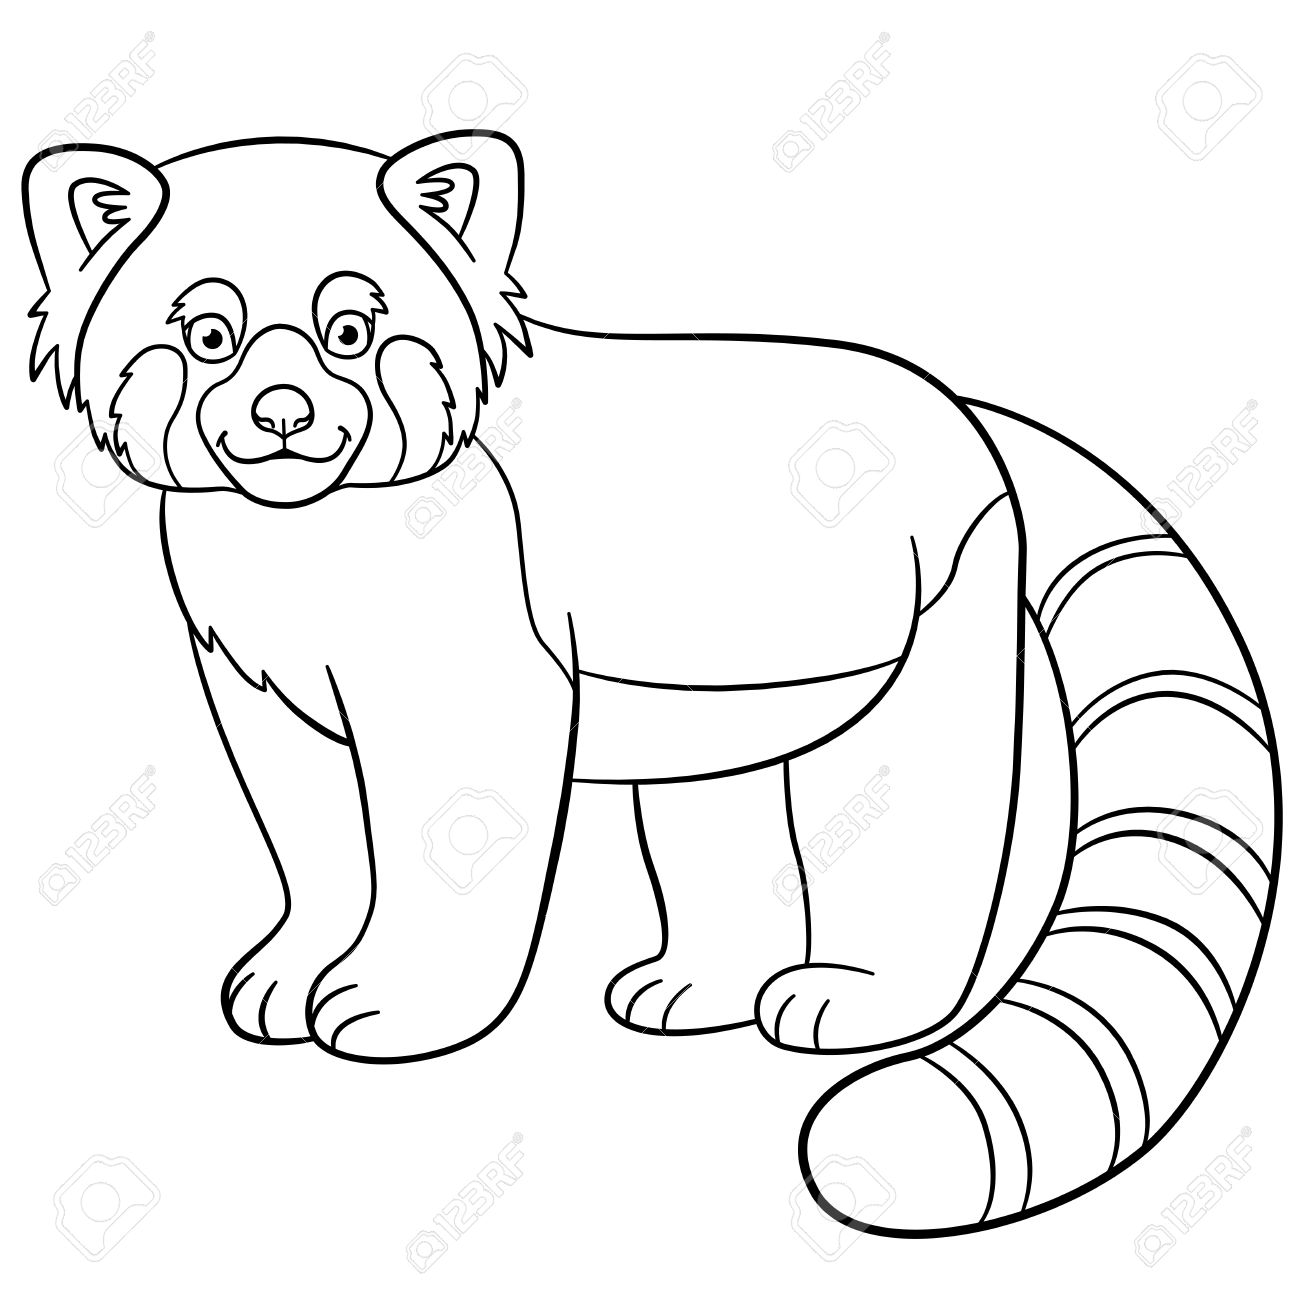 Red Panda Coloring Page Coloring Pageslittle Cute Red Panda Stands And Smilesroyalty